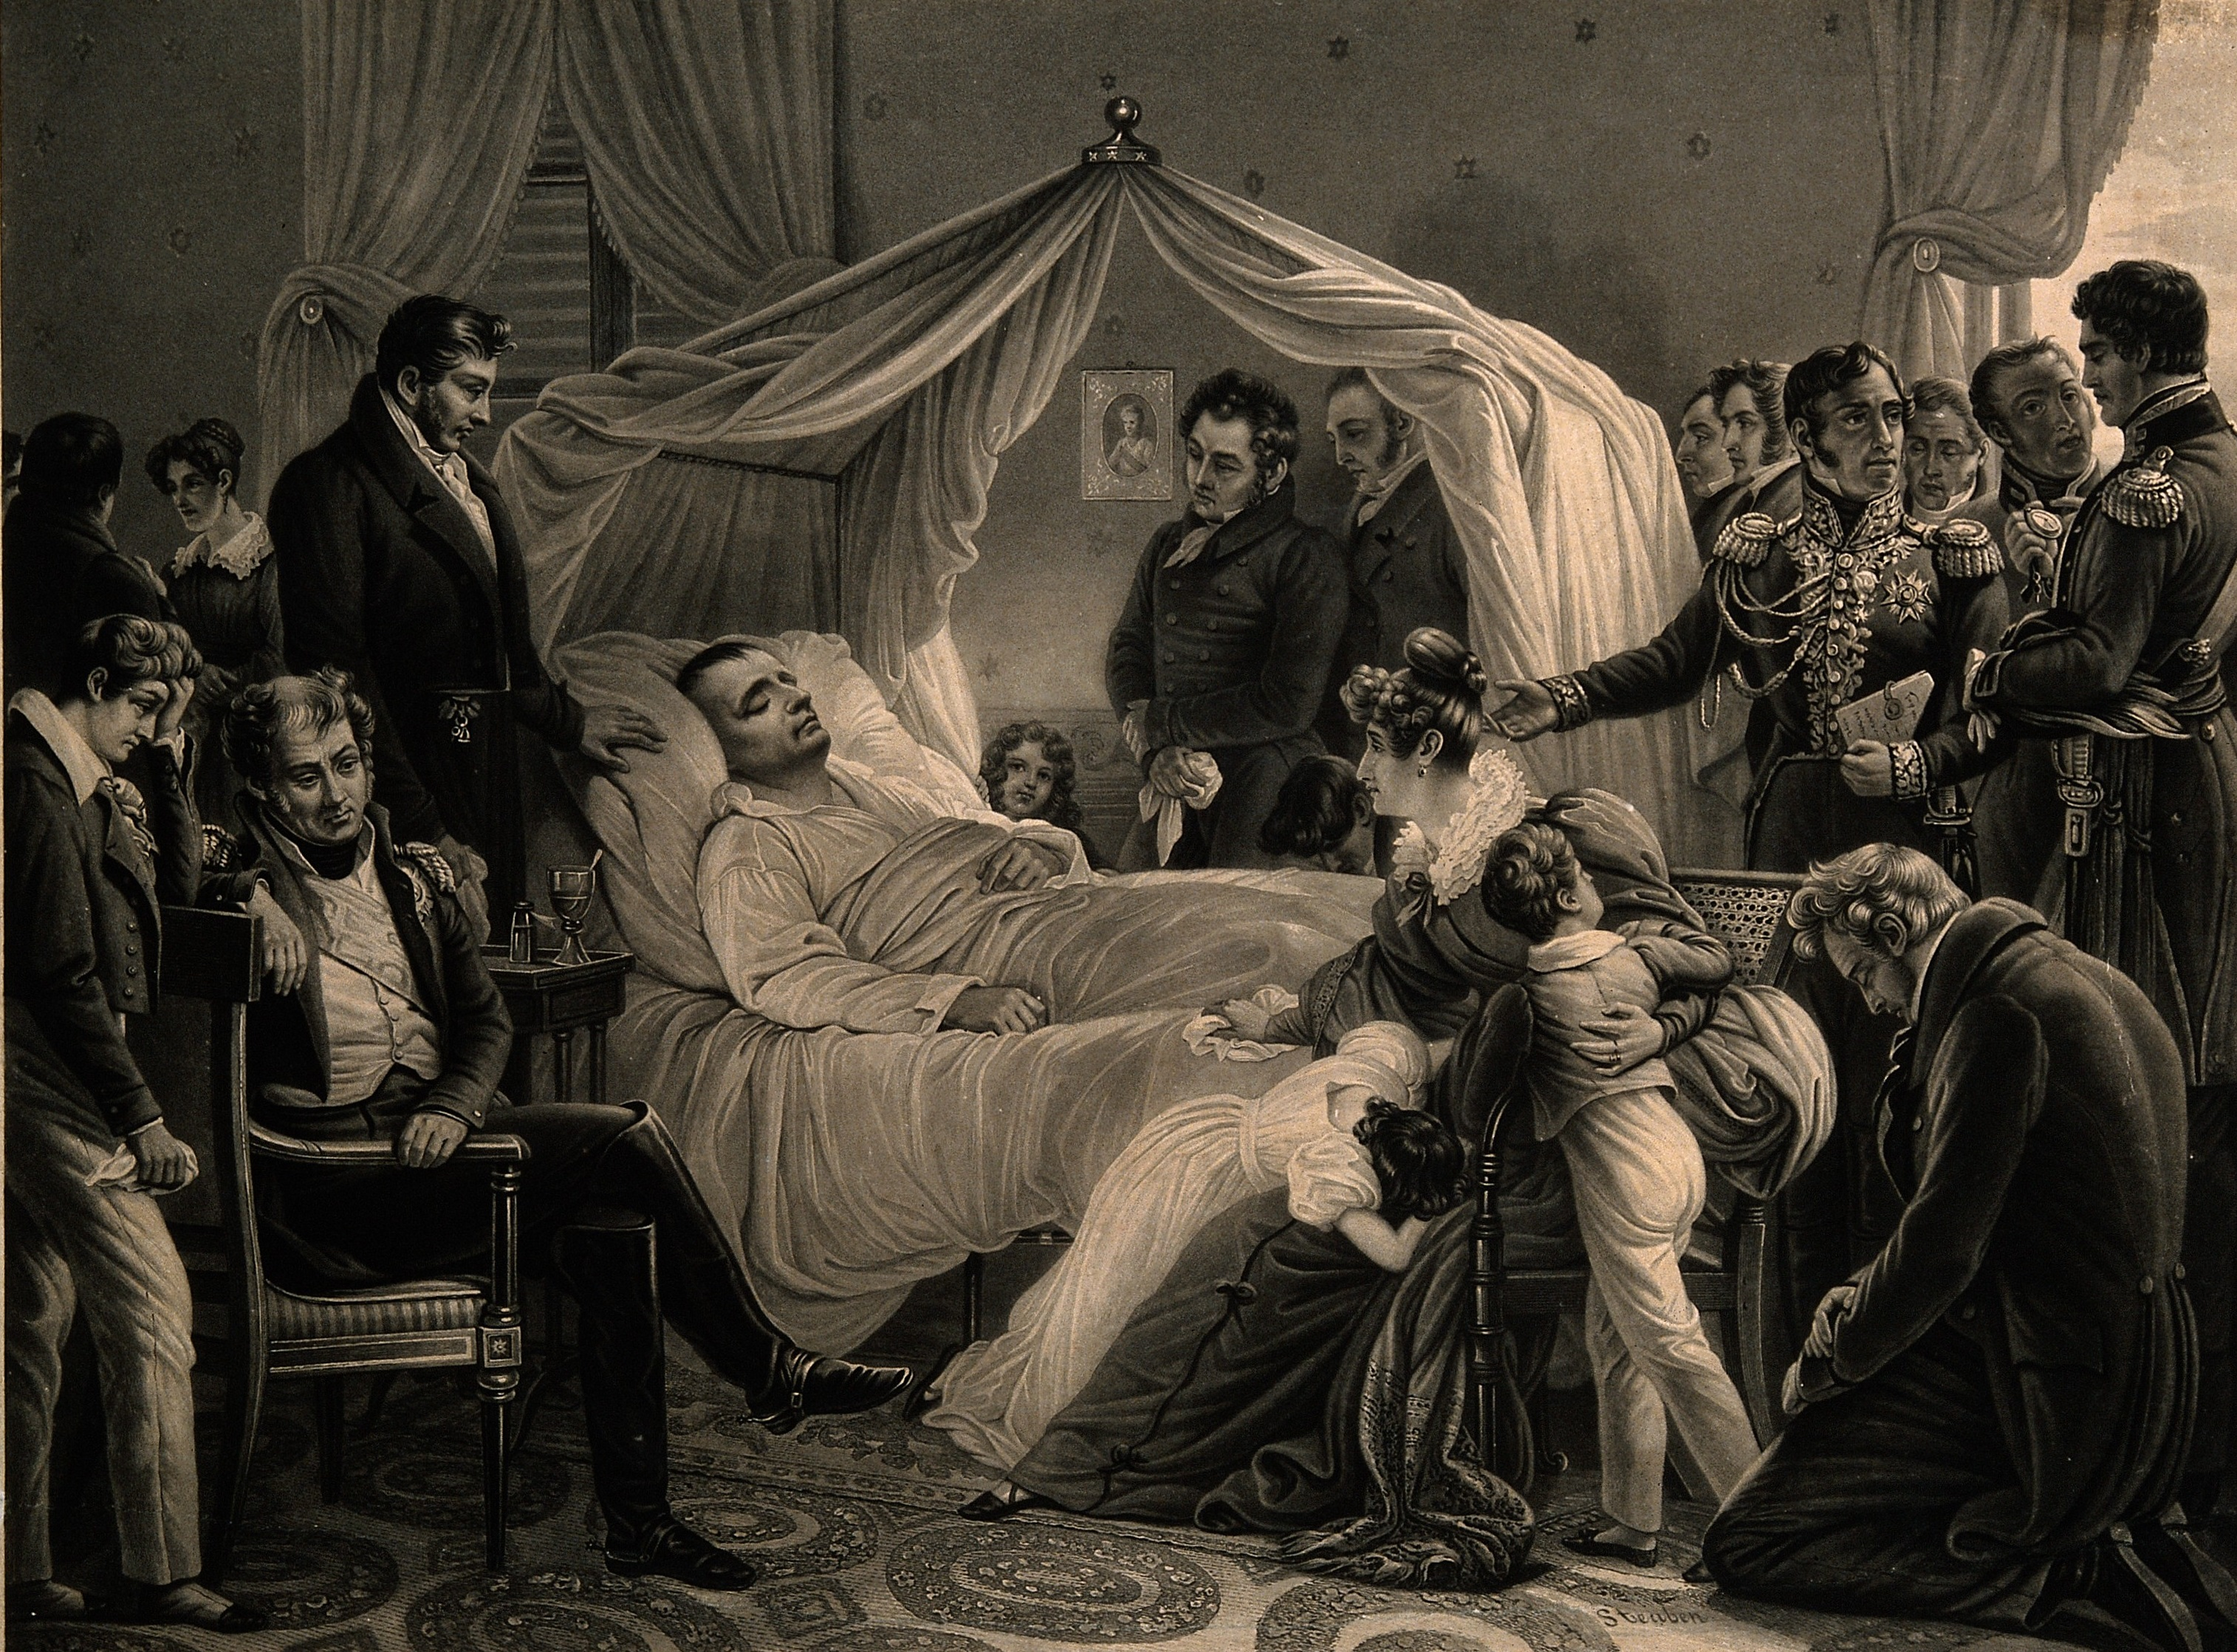 V0006858 The death of Napoleon Bonaparte at St Helena in 1821. Lithog